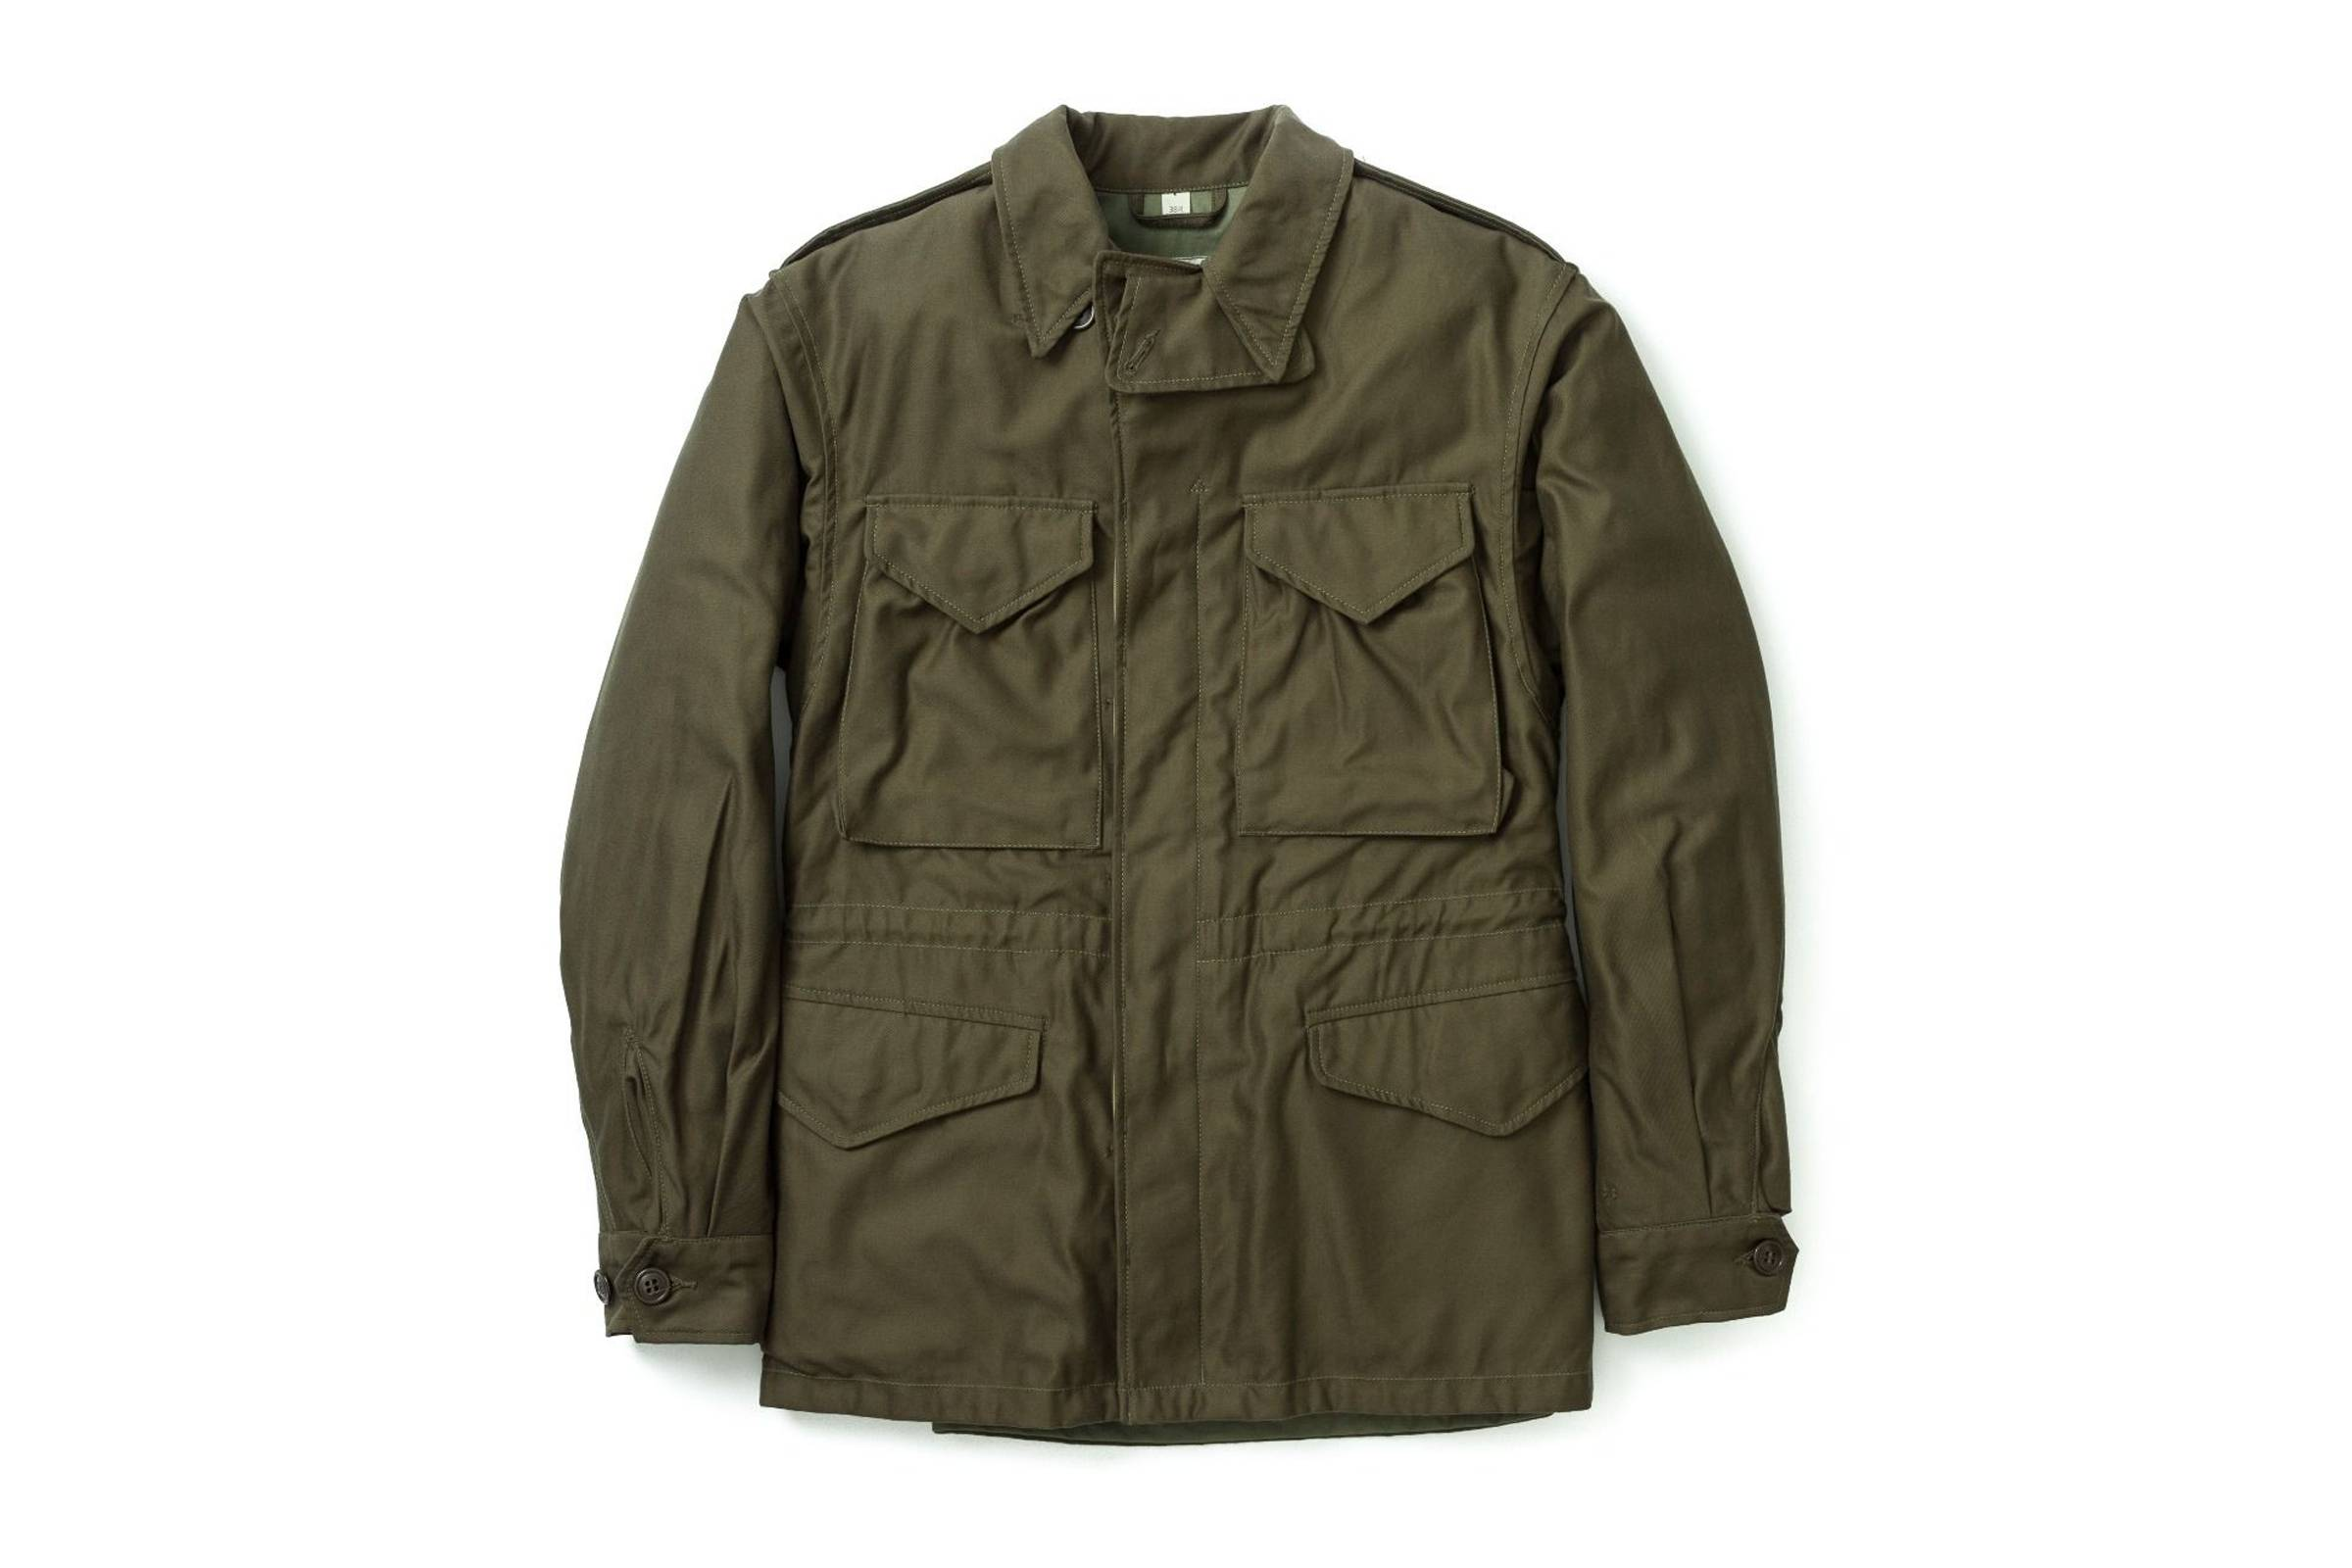 A reproduction-style M-43 feld jacket from The Real McCoy's